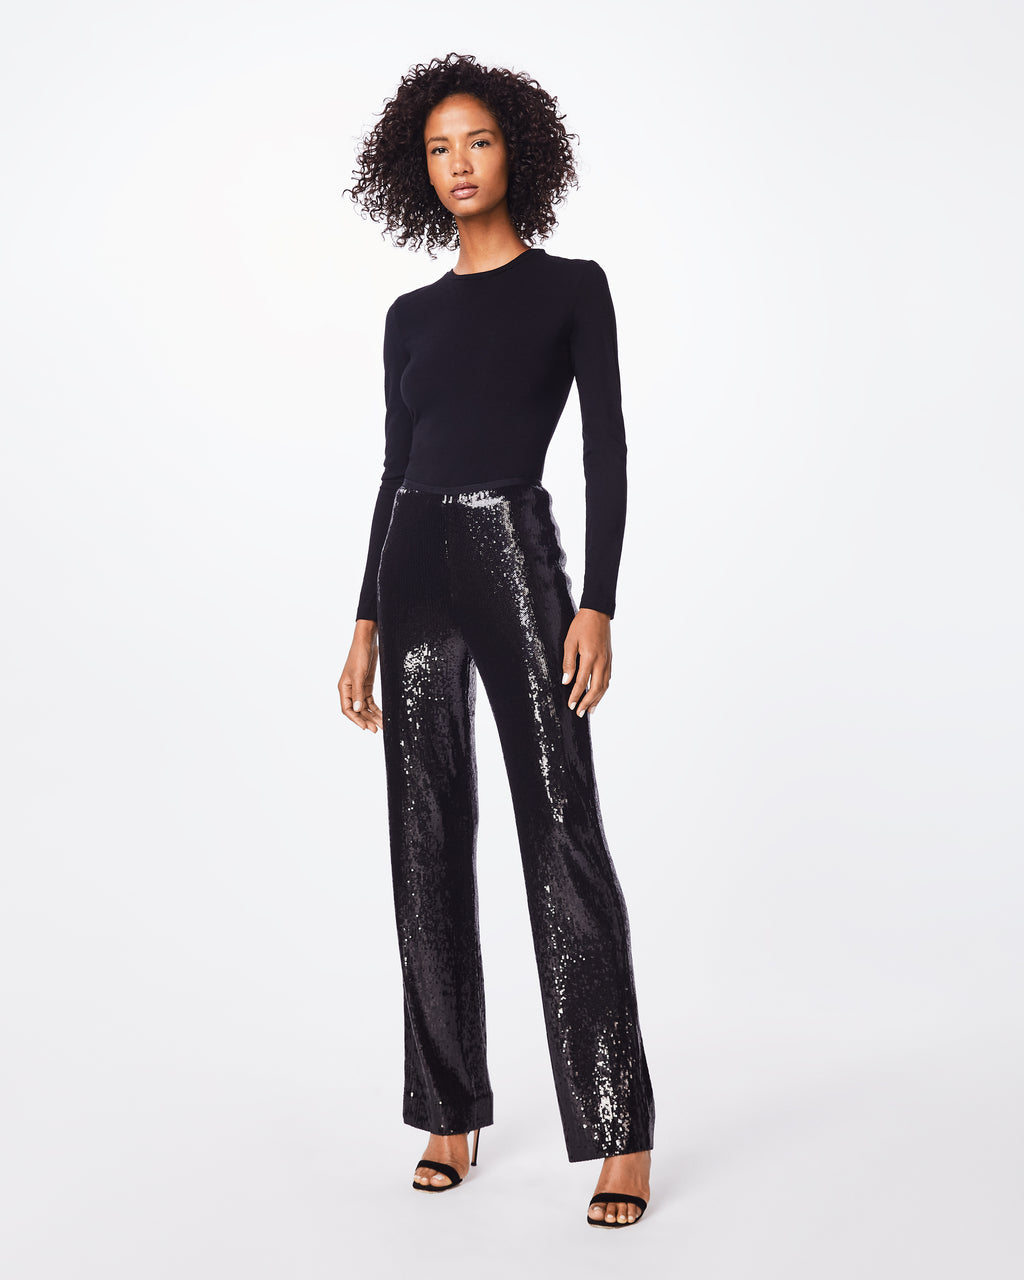 BH10394 - SEQUIN HIGH WAISTED PANT - bottoms - pants - These high waisted, sequined pants feture a center back concealed zipper for a flattering fit. It pairs perflectly with a silk blouse. Final Sale